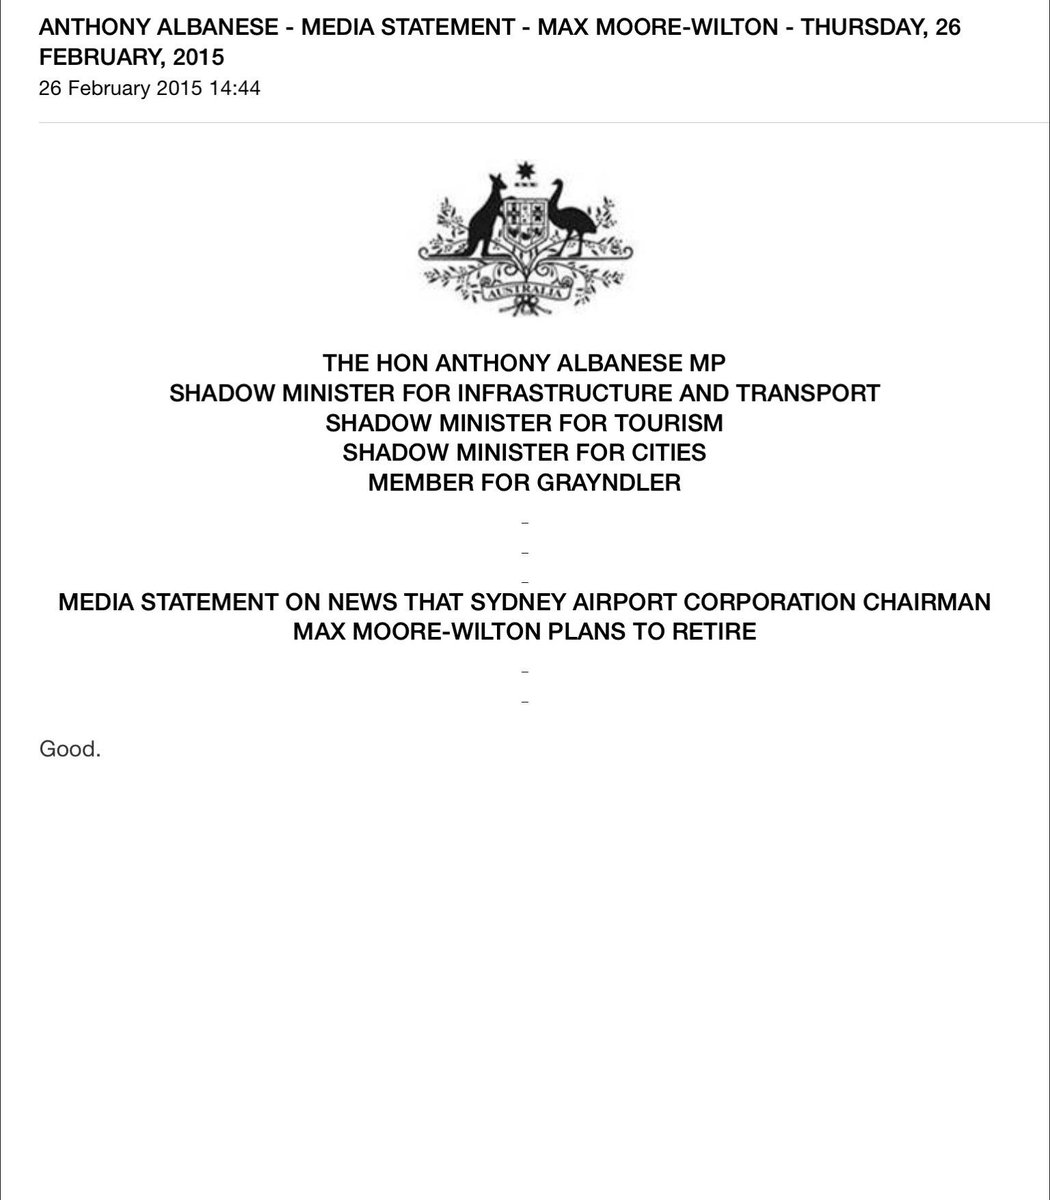 Is the best press release ever issued? @alboMP http://t.co/MtK82iEg6u